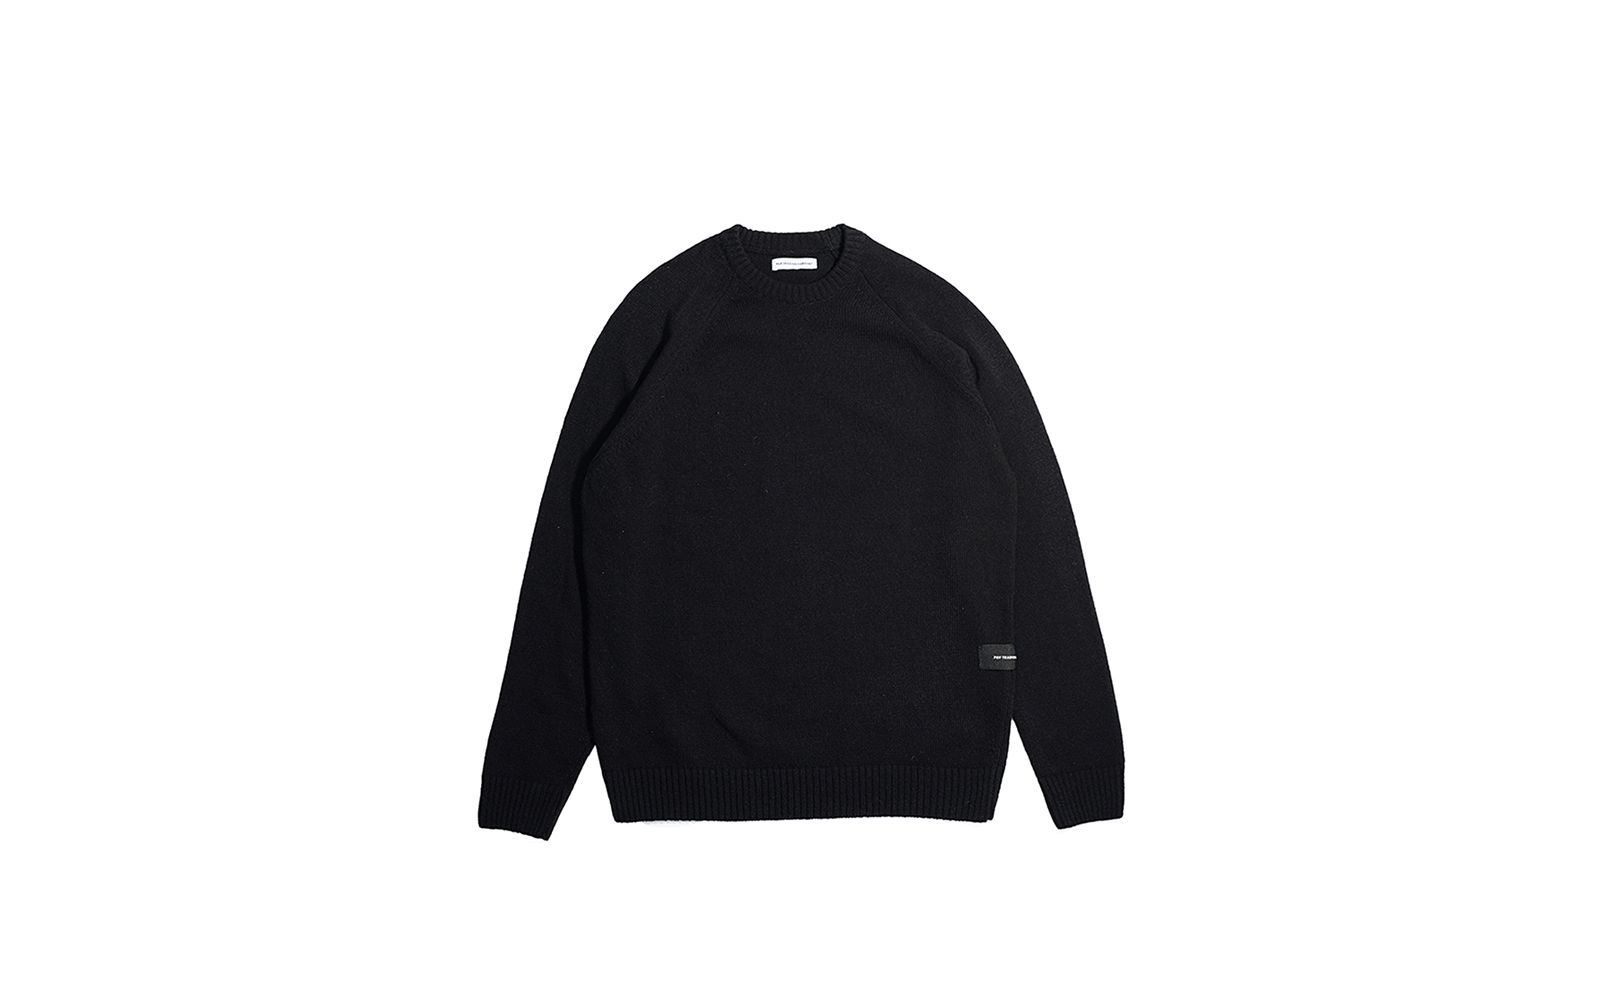 pop-trading-company-aw17-product-reason-knitted-crew